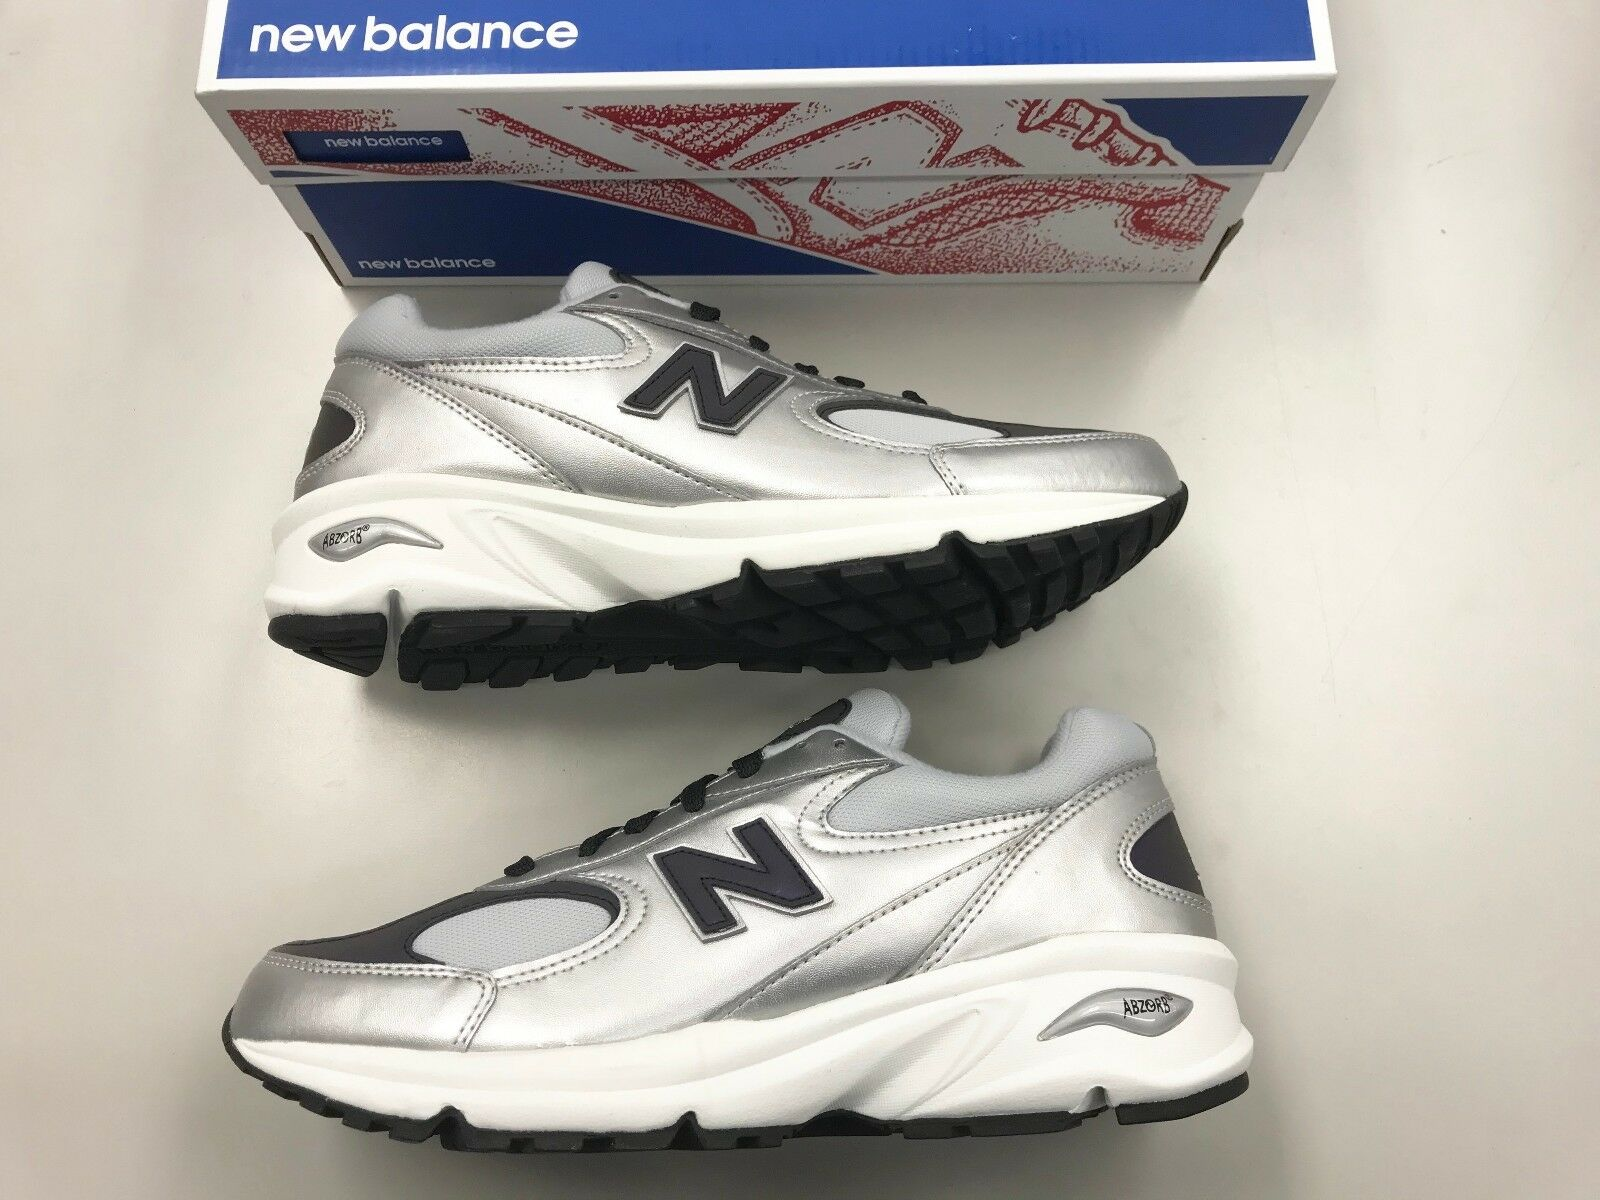 separation shoes 8d645 a8c5f Brand New Men New Balance M498 M498 M498 SL Silver Leather running walking  shoes 0 9